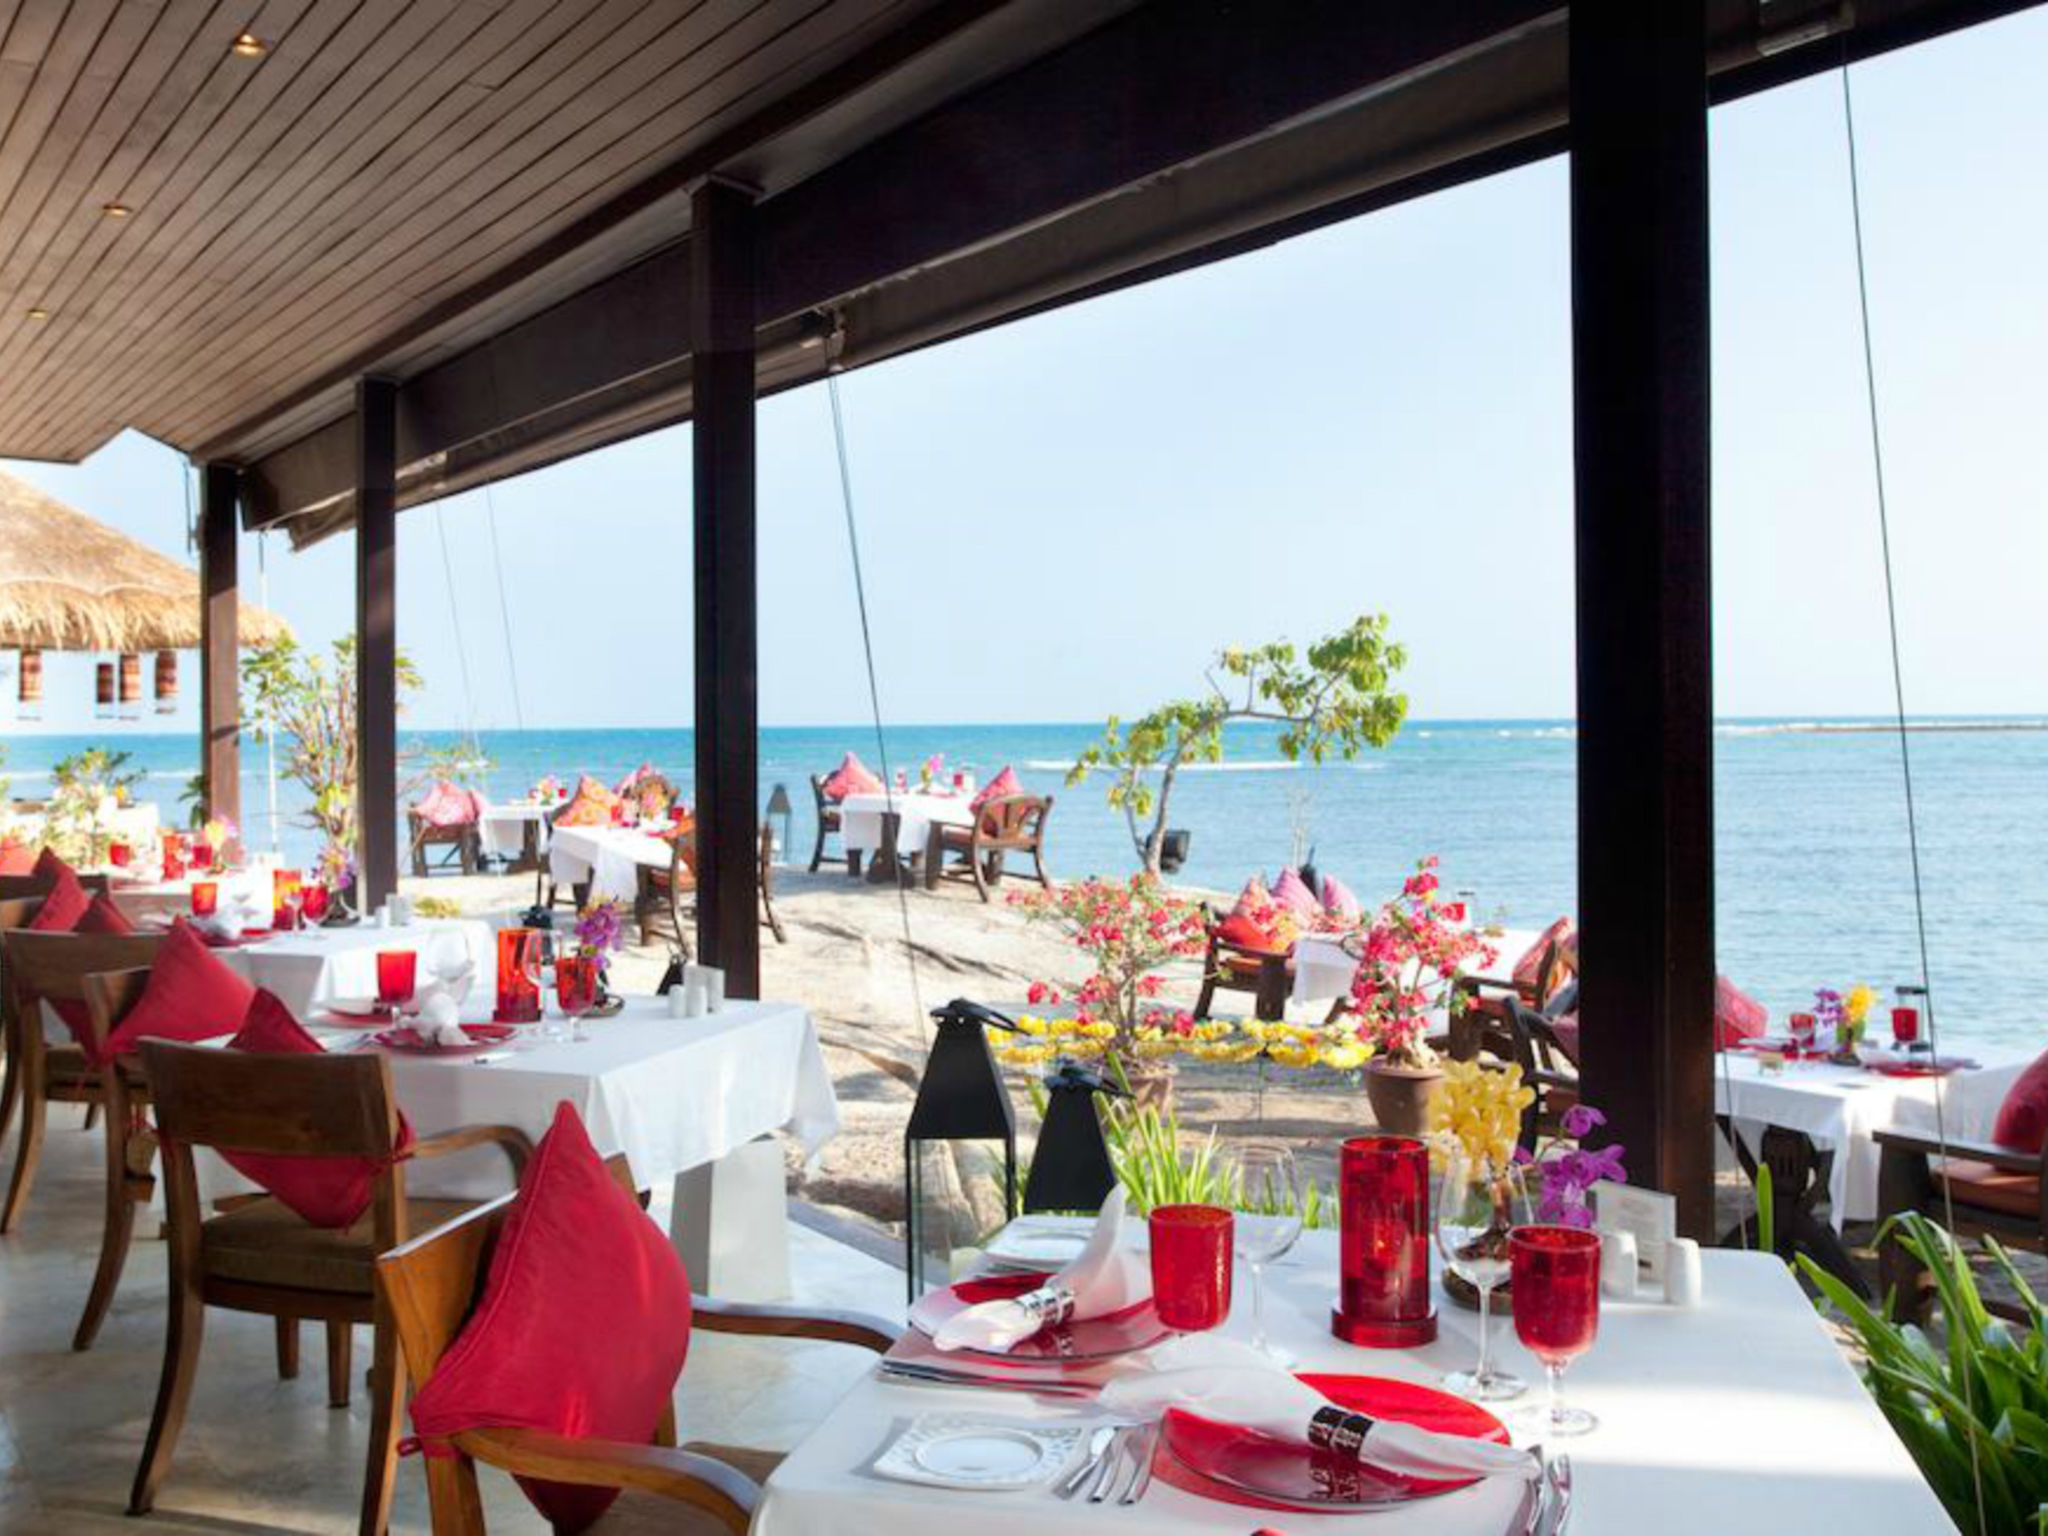 Restaurant   Rocky S Boutique Resort. Hotel in KOH SAMUI   Rocky S Boutique Resort